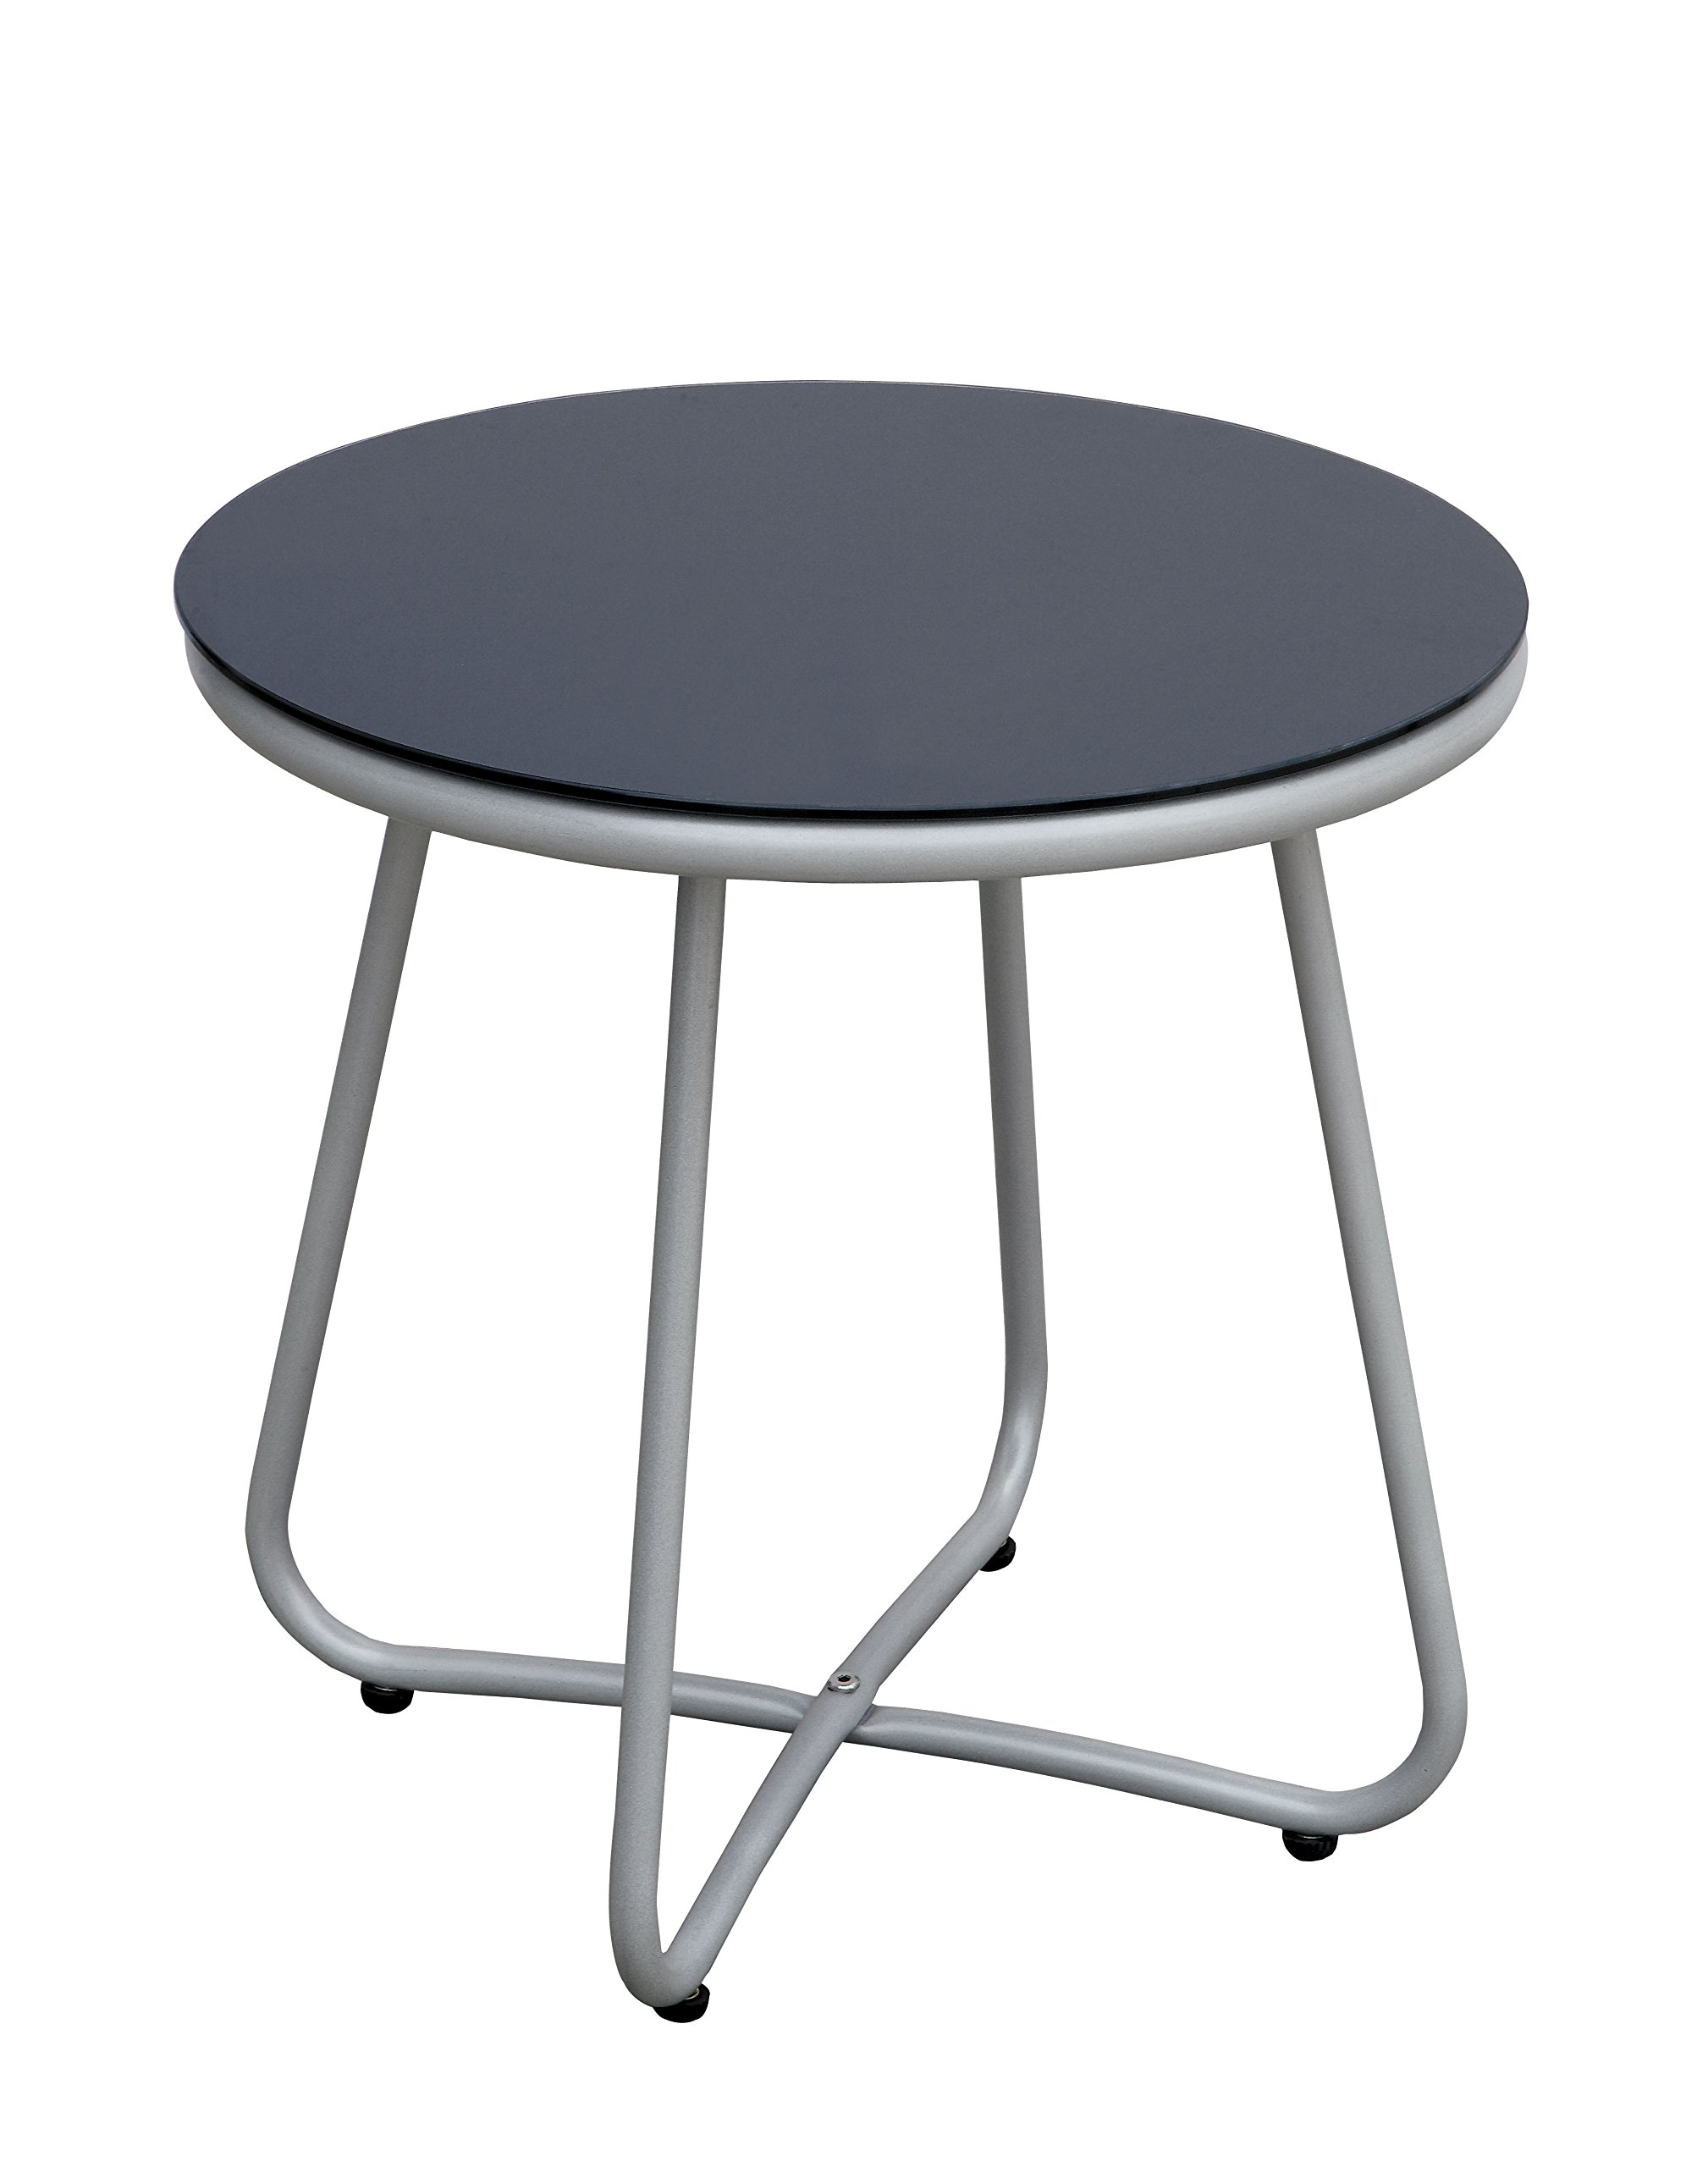 patio tables lavorist outdoor side table grey athome idf myami contemporary style sturdy small space furniture solutions black and white accent chair drop down kitchen green glass